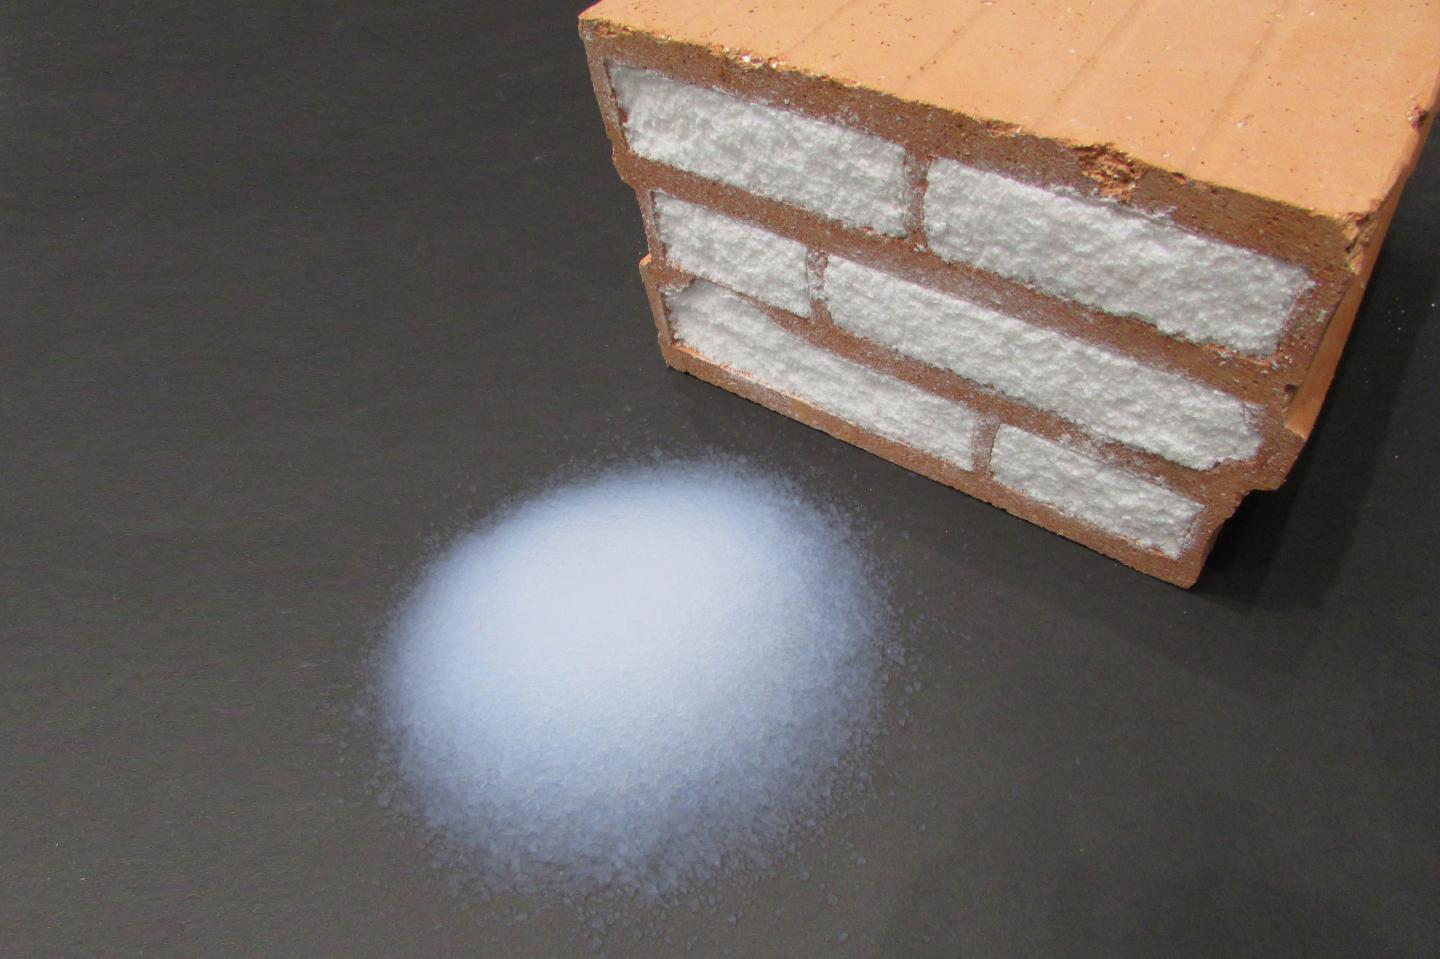 The aerobricks are simply ordinary hollow clay bricks, filled with an aerogel paste